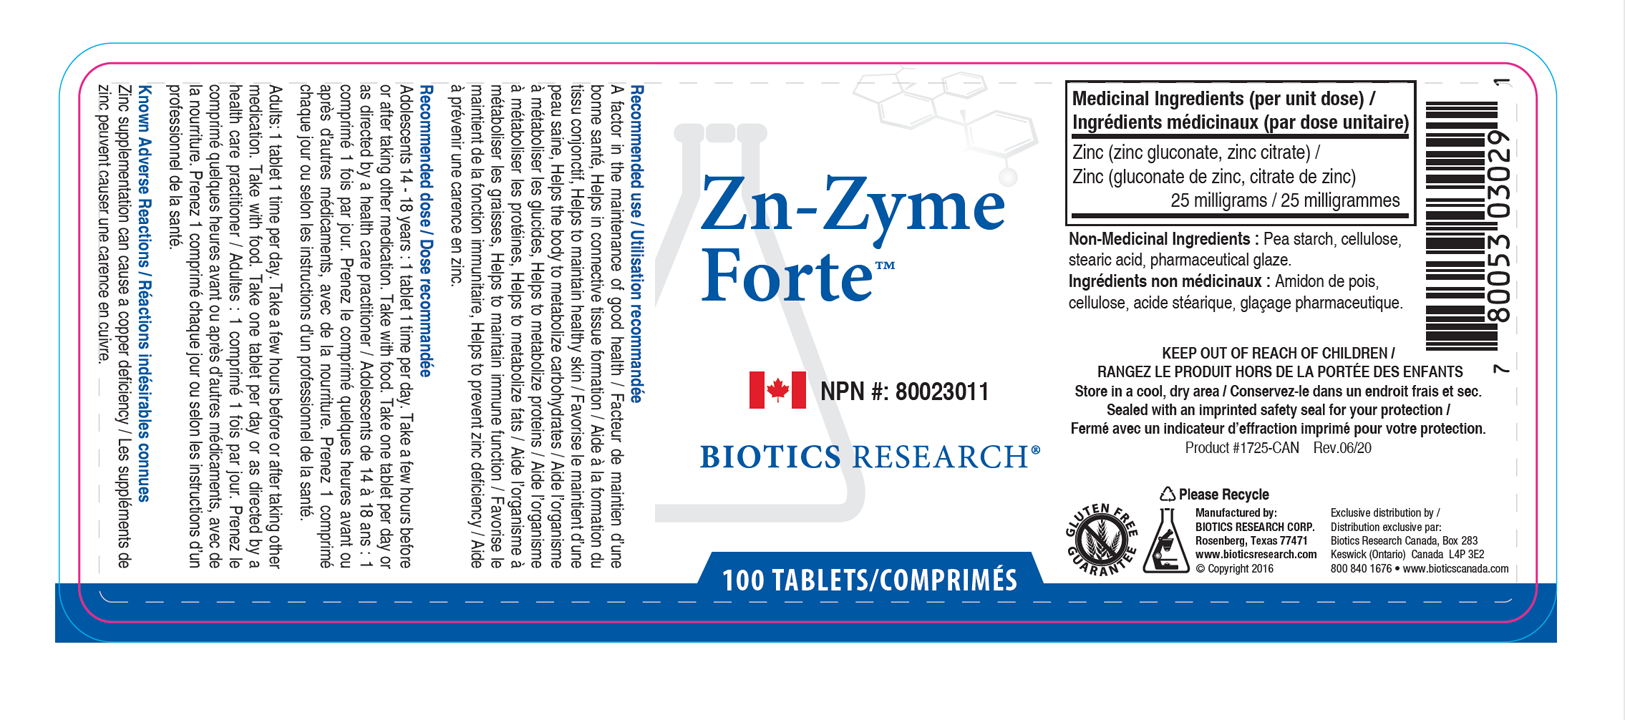 Zn-Zyme-Forte-Label